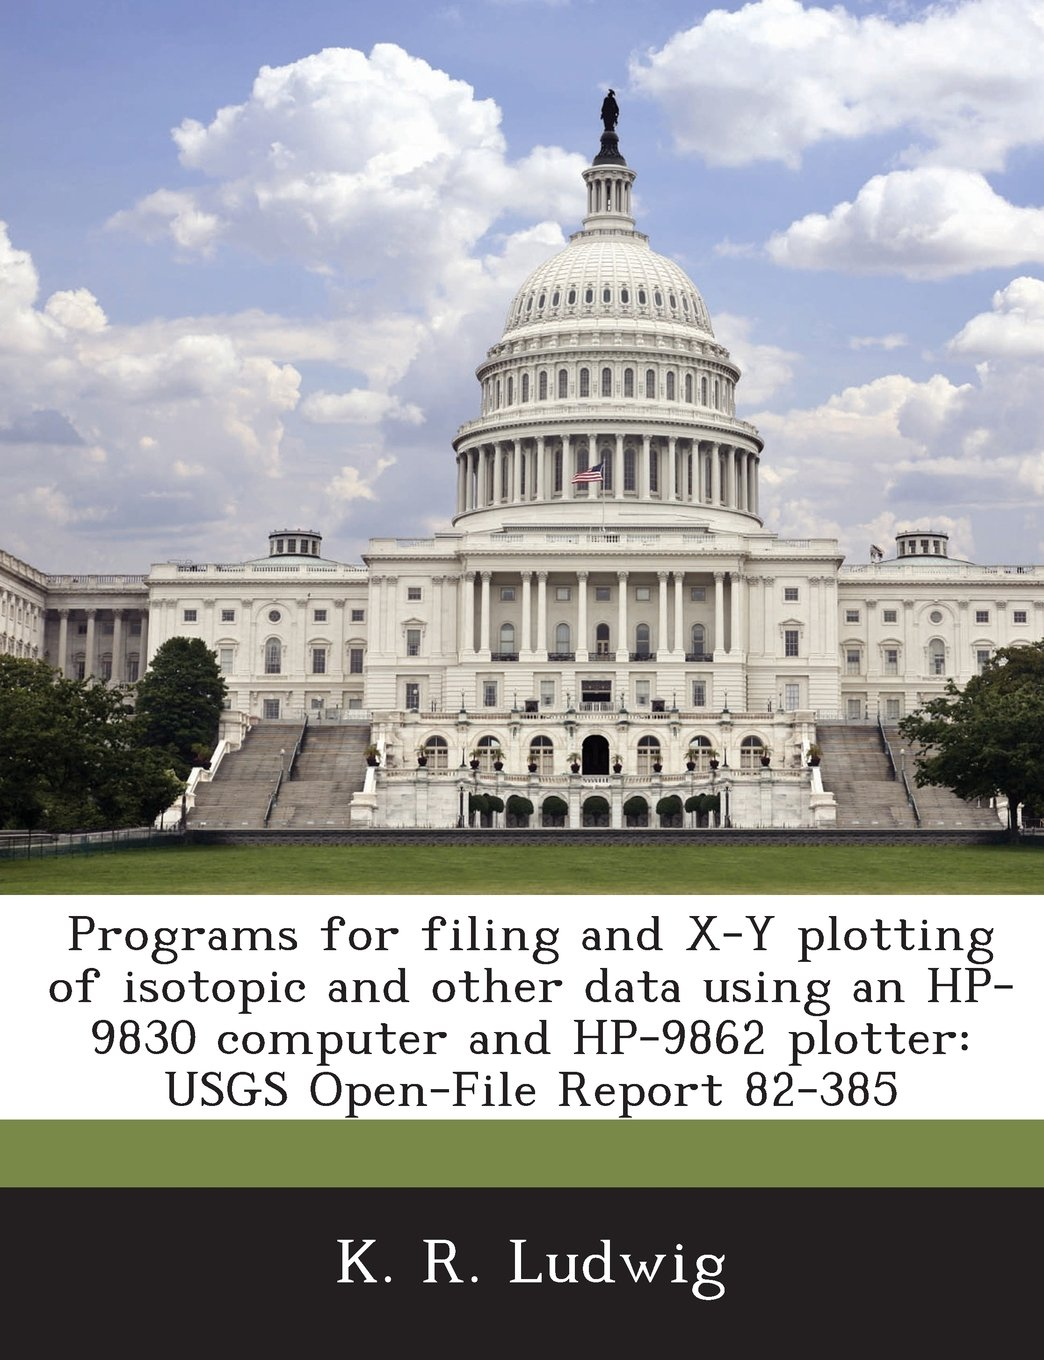 Programs for filing and X-Y plotting of isotopic and other data using an HP-9830 computer and HP-9862 plotter: USGS Open-File Report 82-385: Amazon.es: Ludwig, K. R.: Libros en idiomas extranjeros